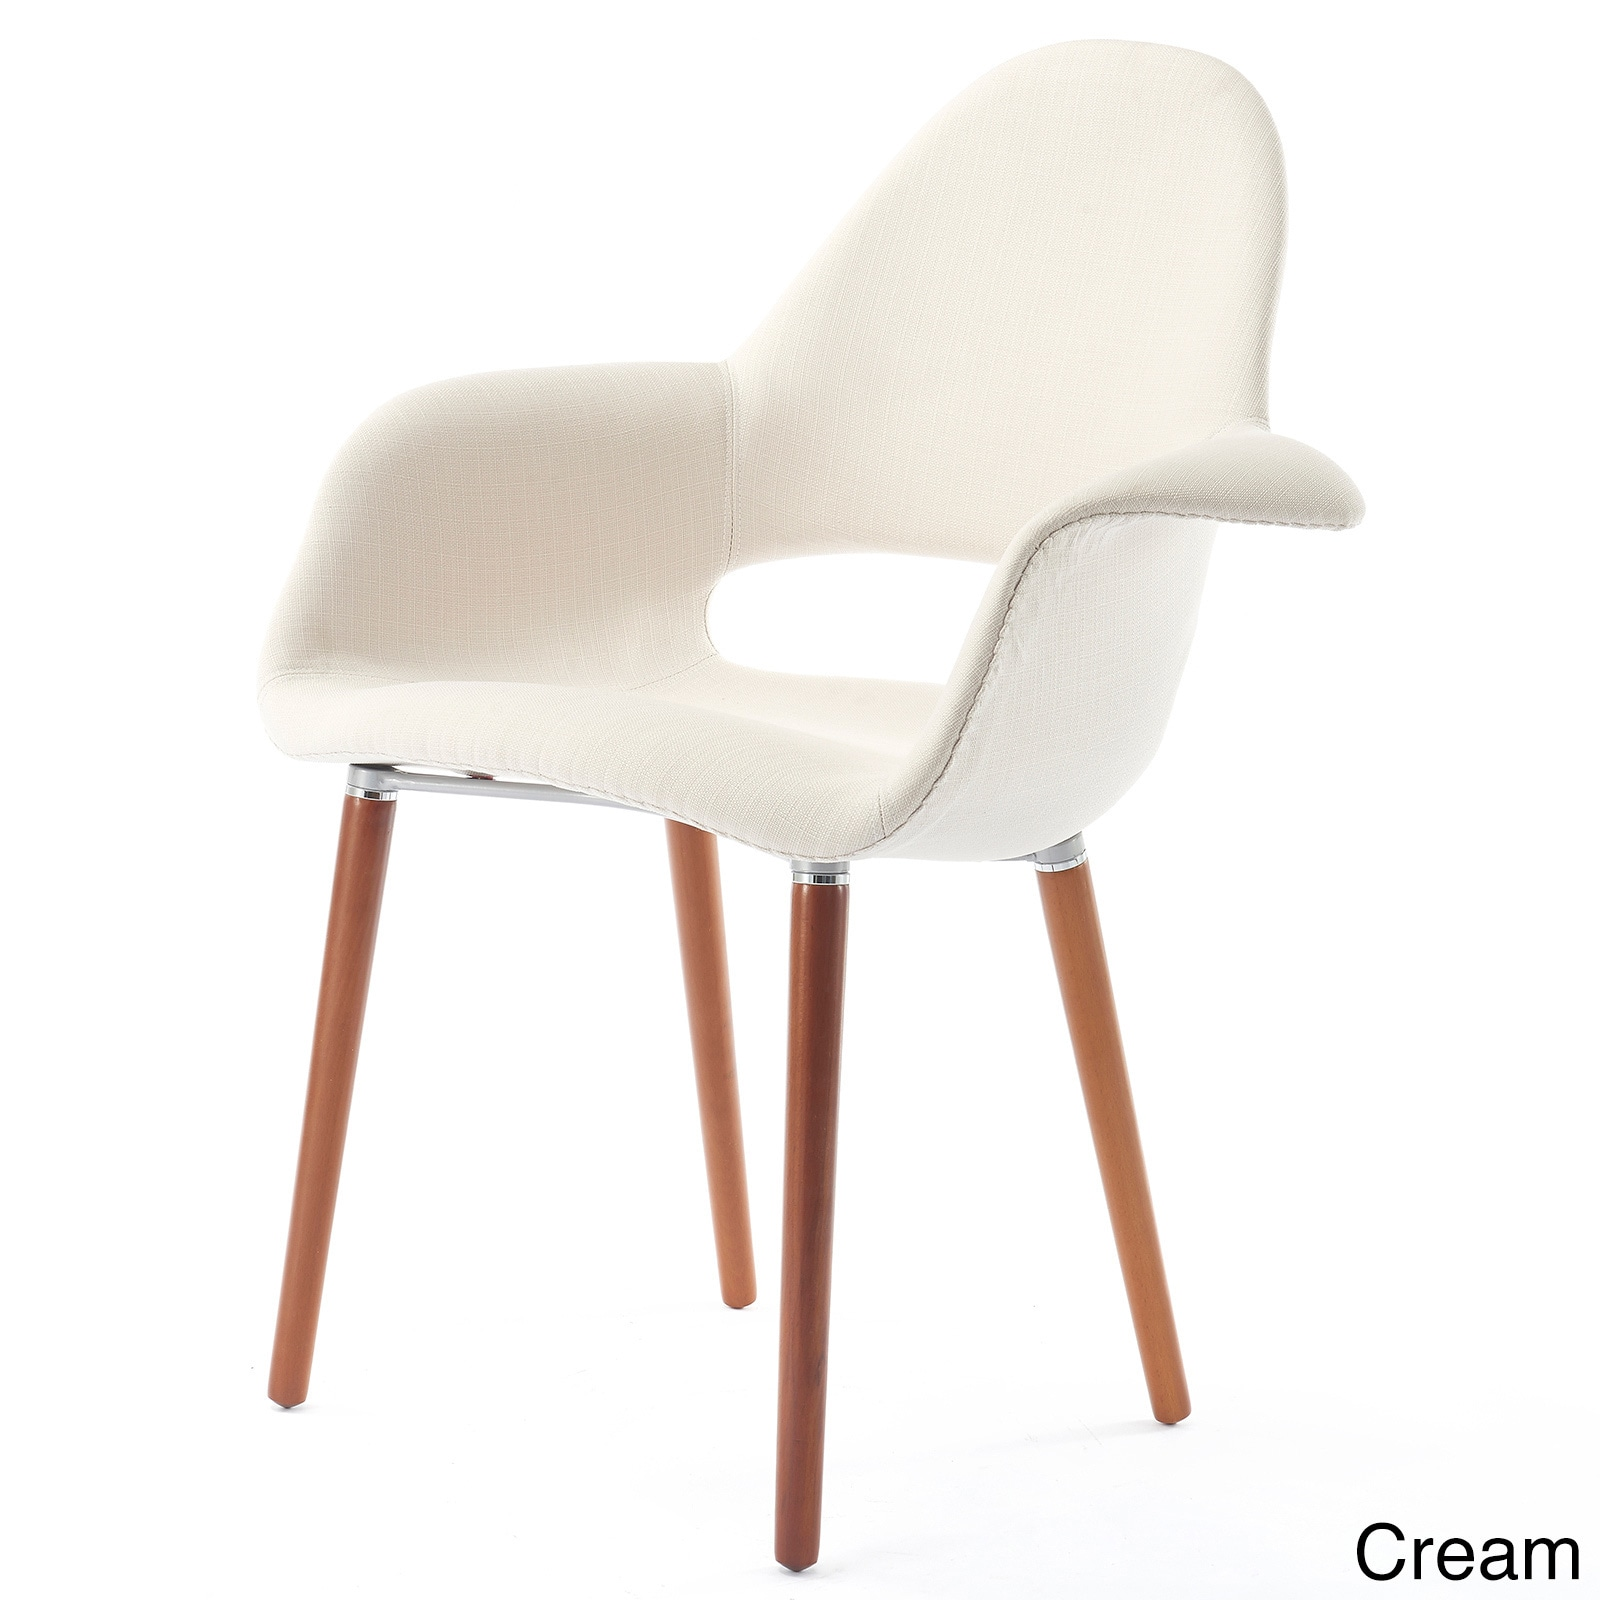 Merveilleux Shop American Atelier Conrad Chair   Free Shipping Today   Overstock.com    10226107